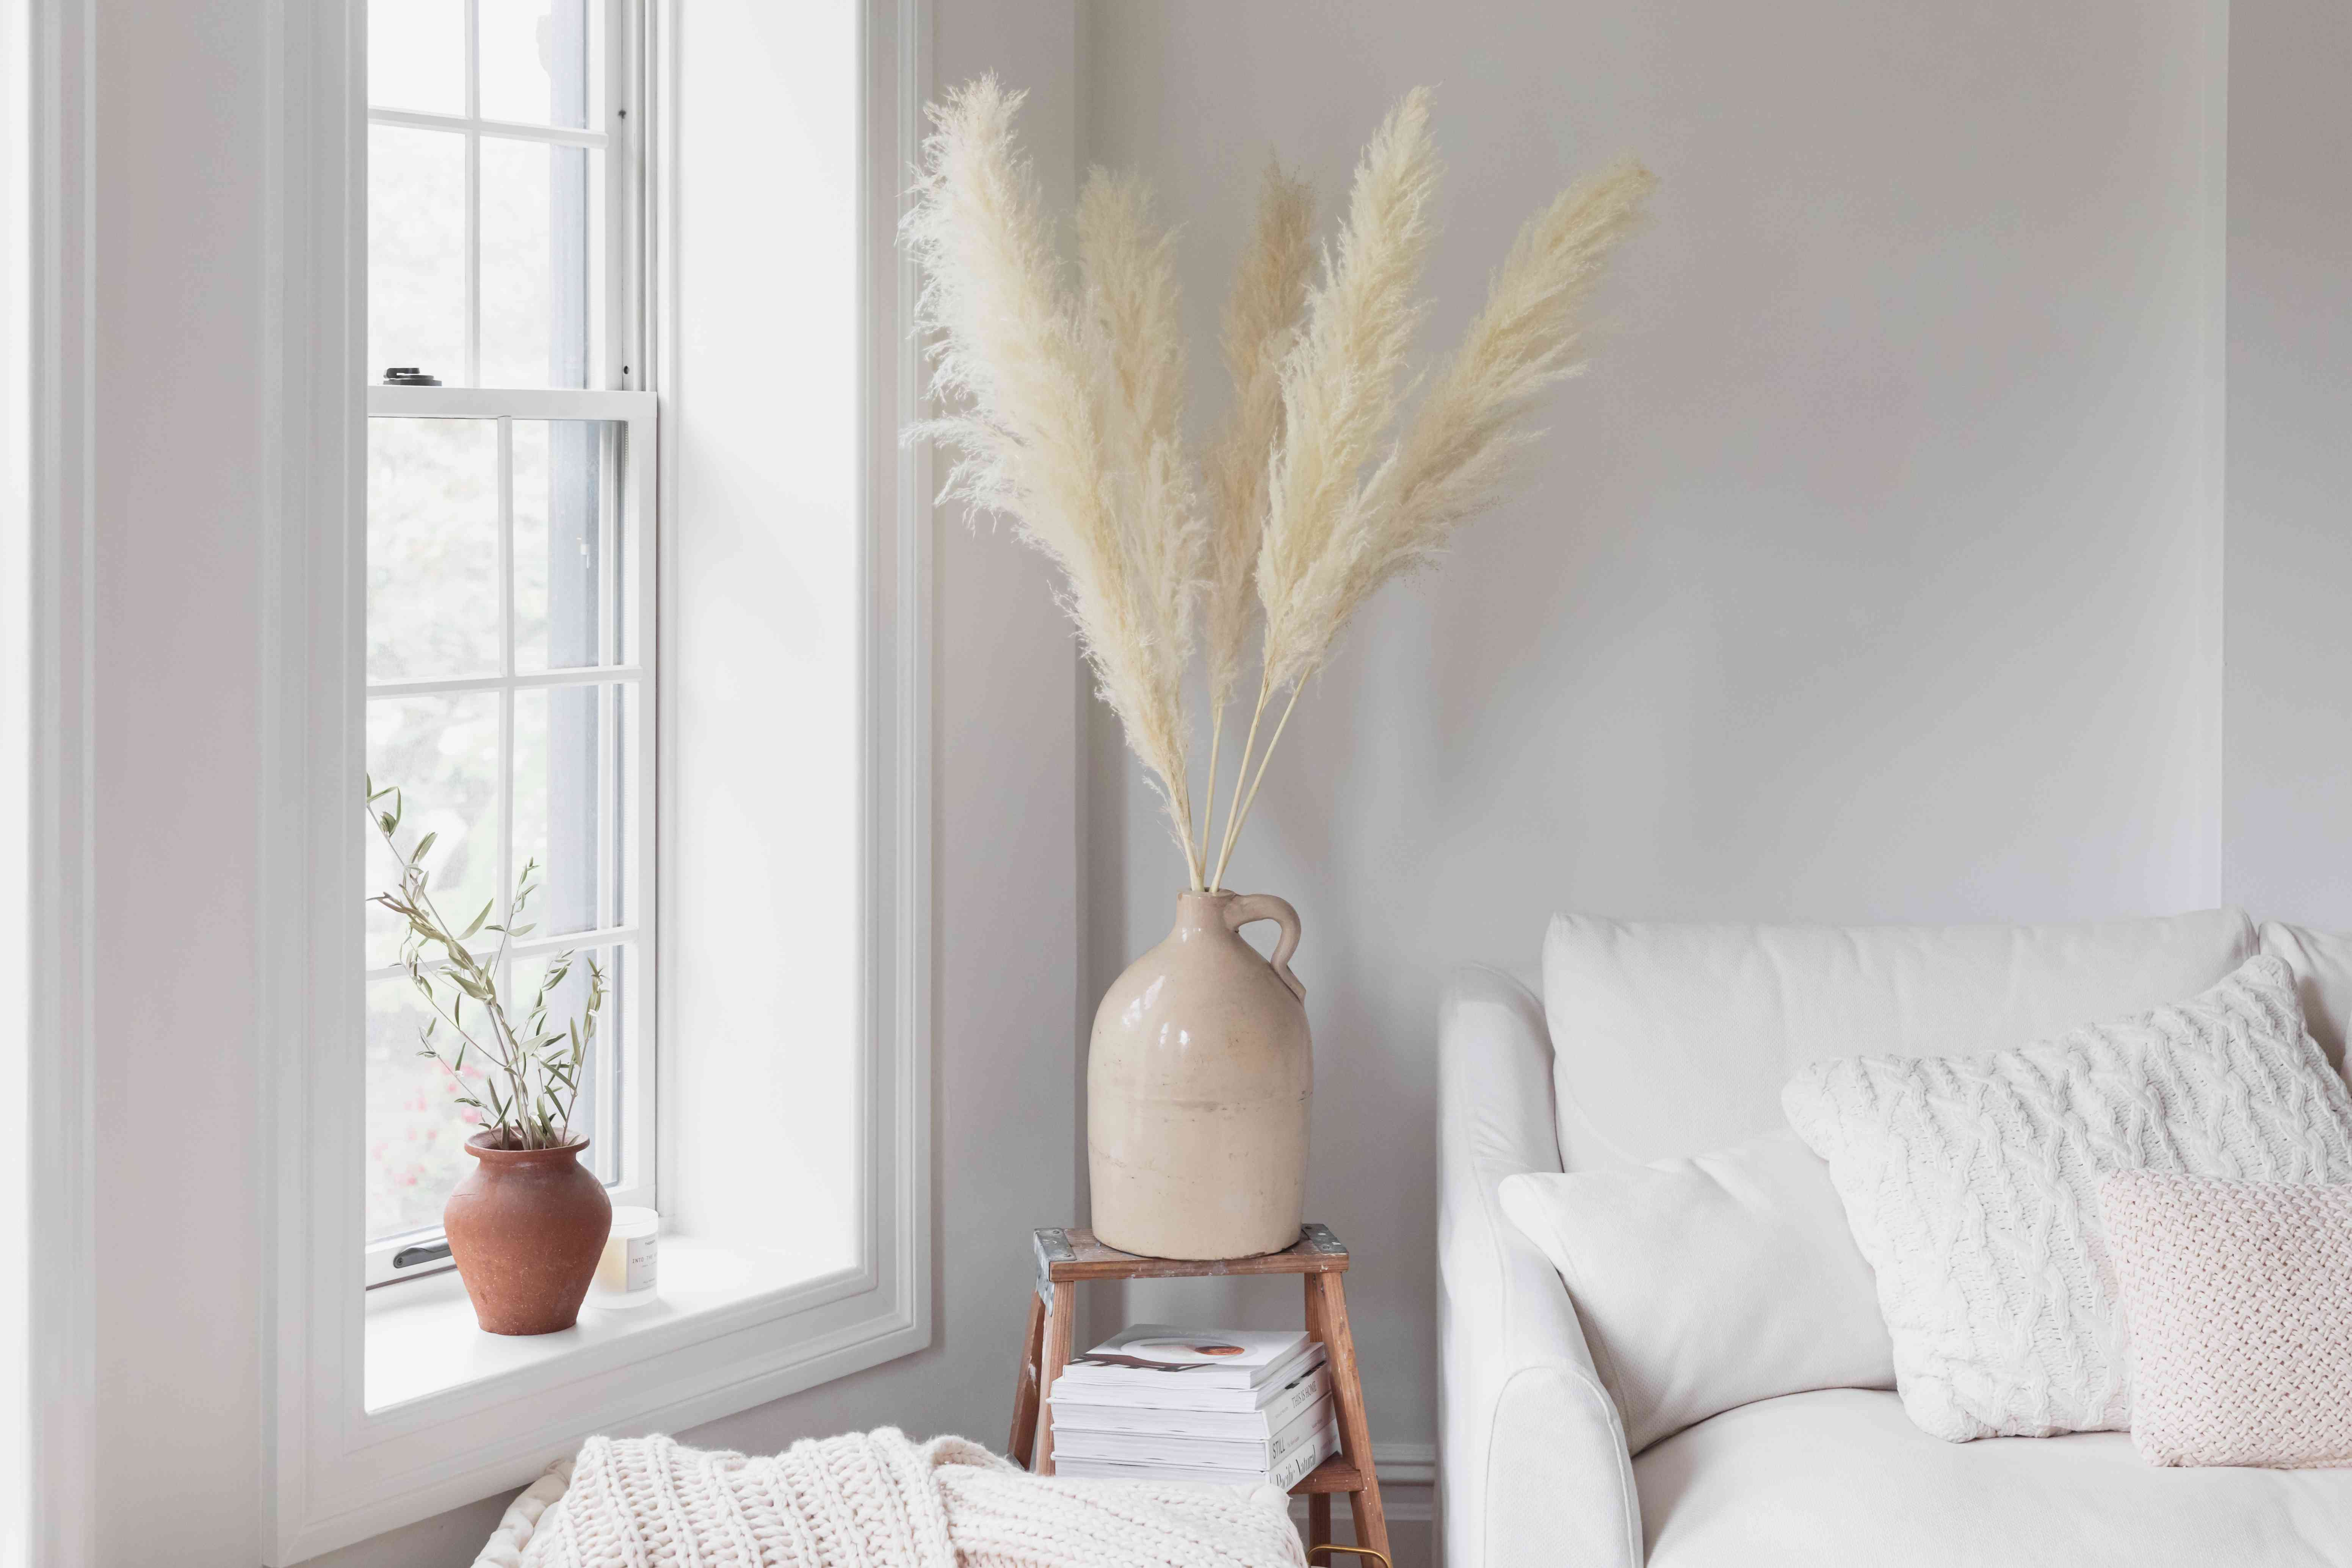 Cream-colored pampas grass in beige ceramic vase in room corner next to window and white chair